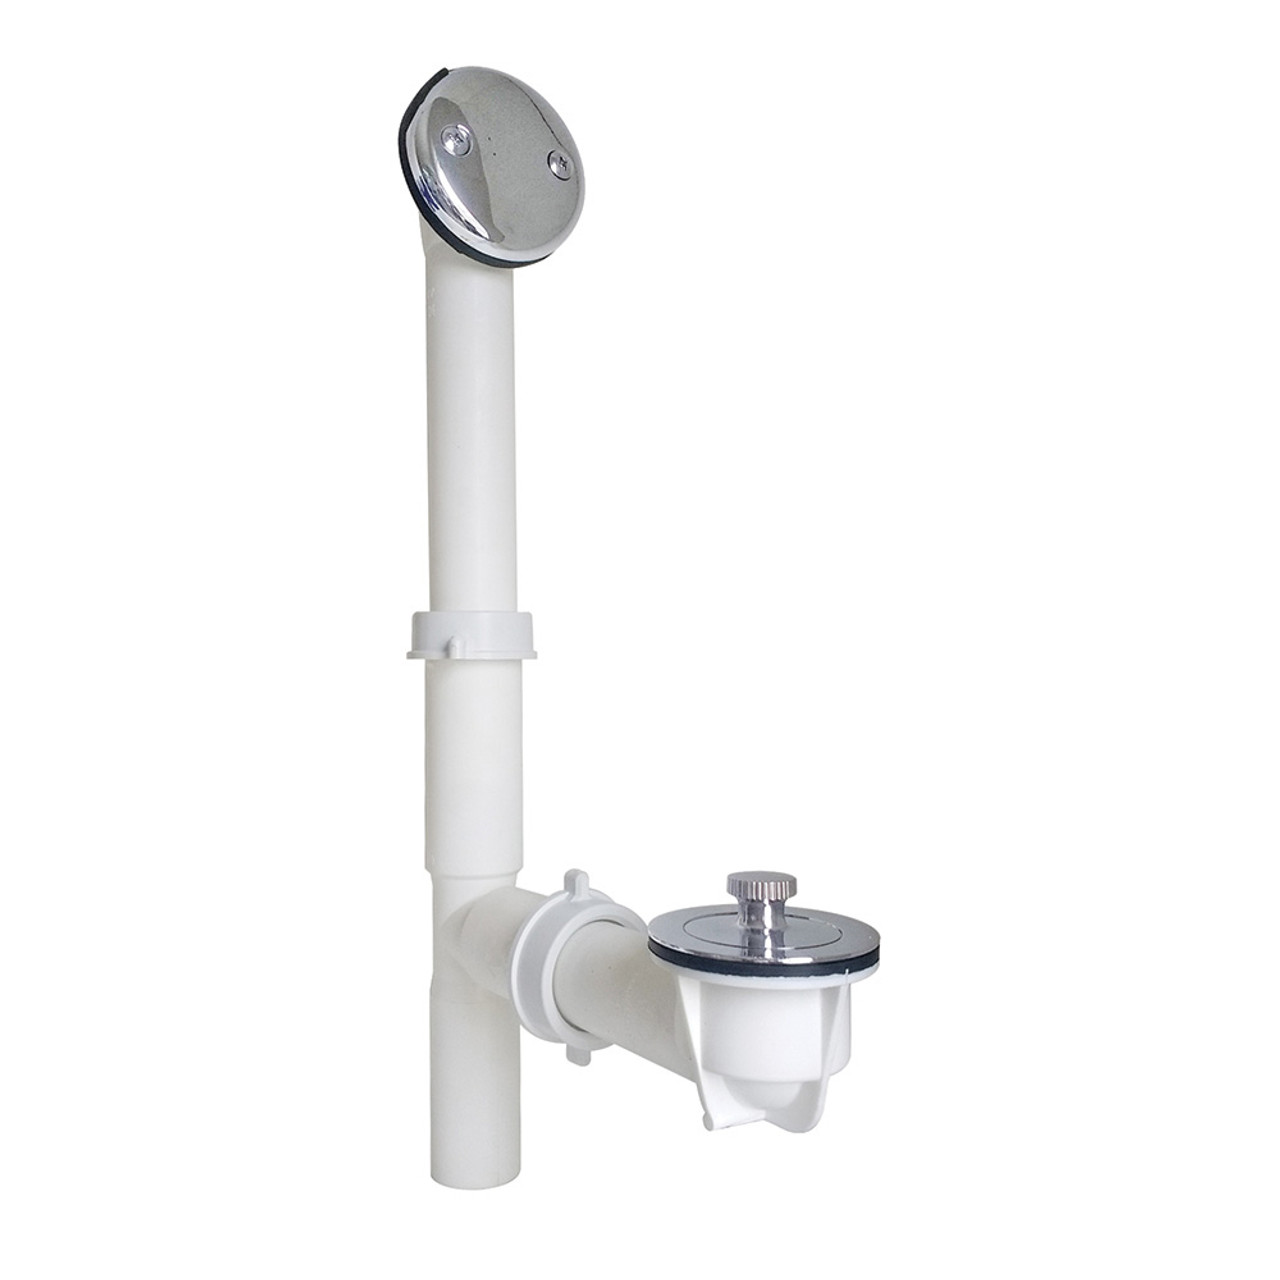 Jb Products Jbp 700pvcbx Pc Tubular Bathtub Drain With Lift And Turn In Polished Chrome Polished Stainless Brushed Stainless In Polished Stainless Brushed Stainless 700pvcbx Pc Online Bath1 Com